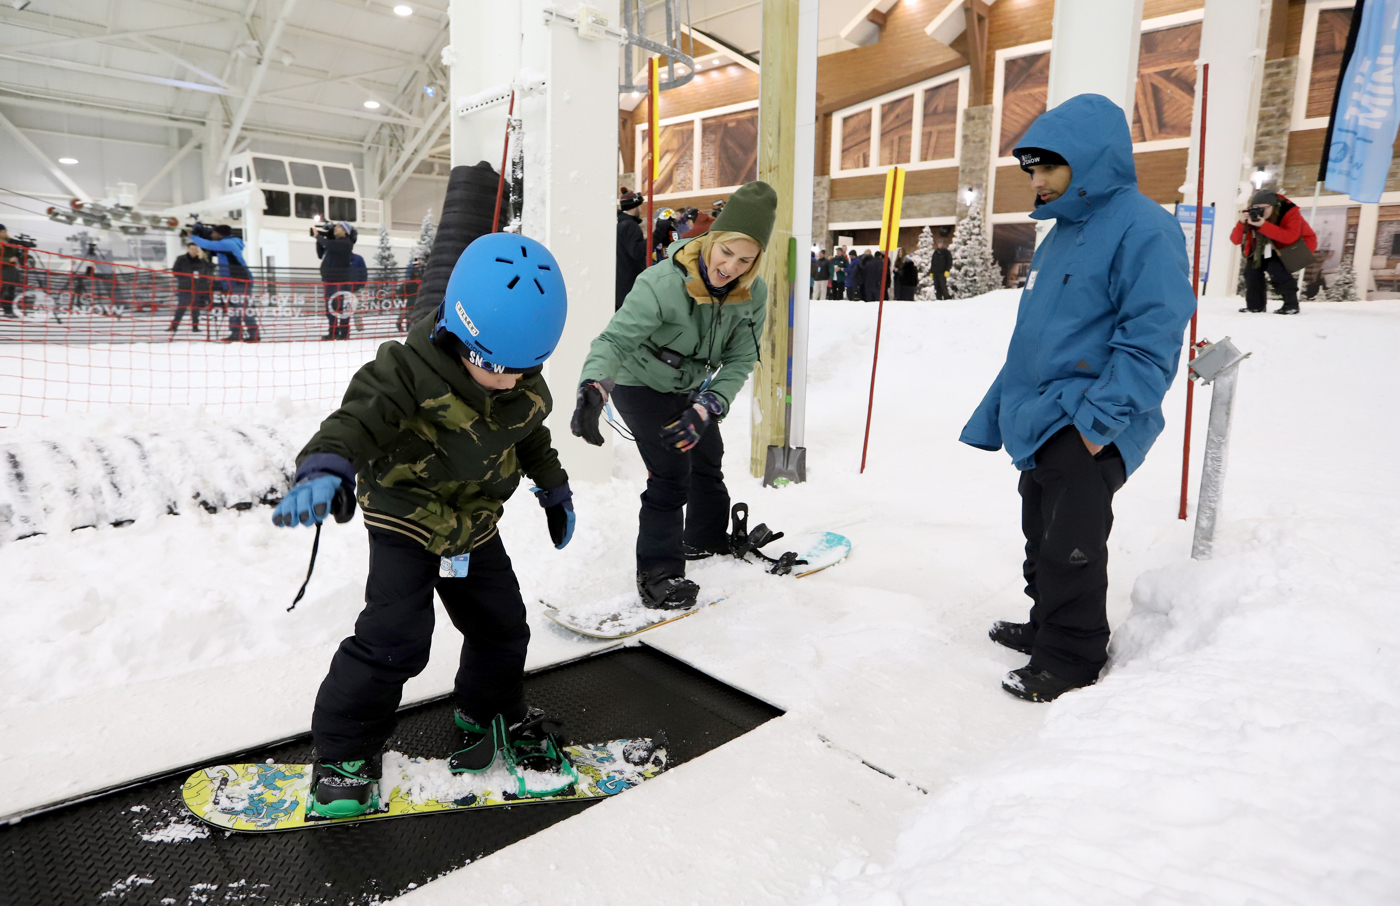 Bring your own gloves and everything else to know before going to Big SNOW